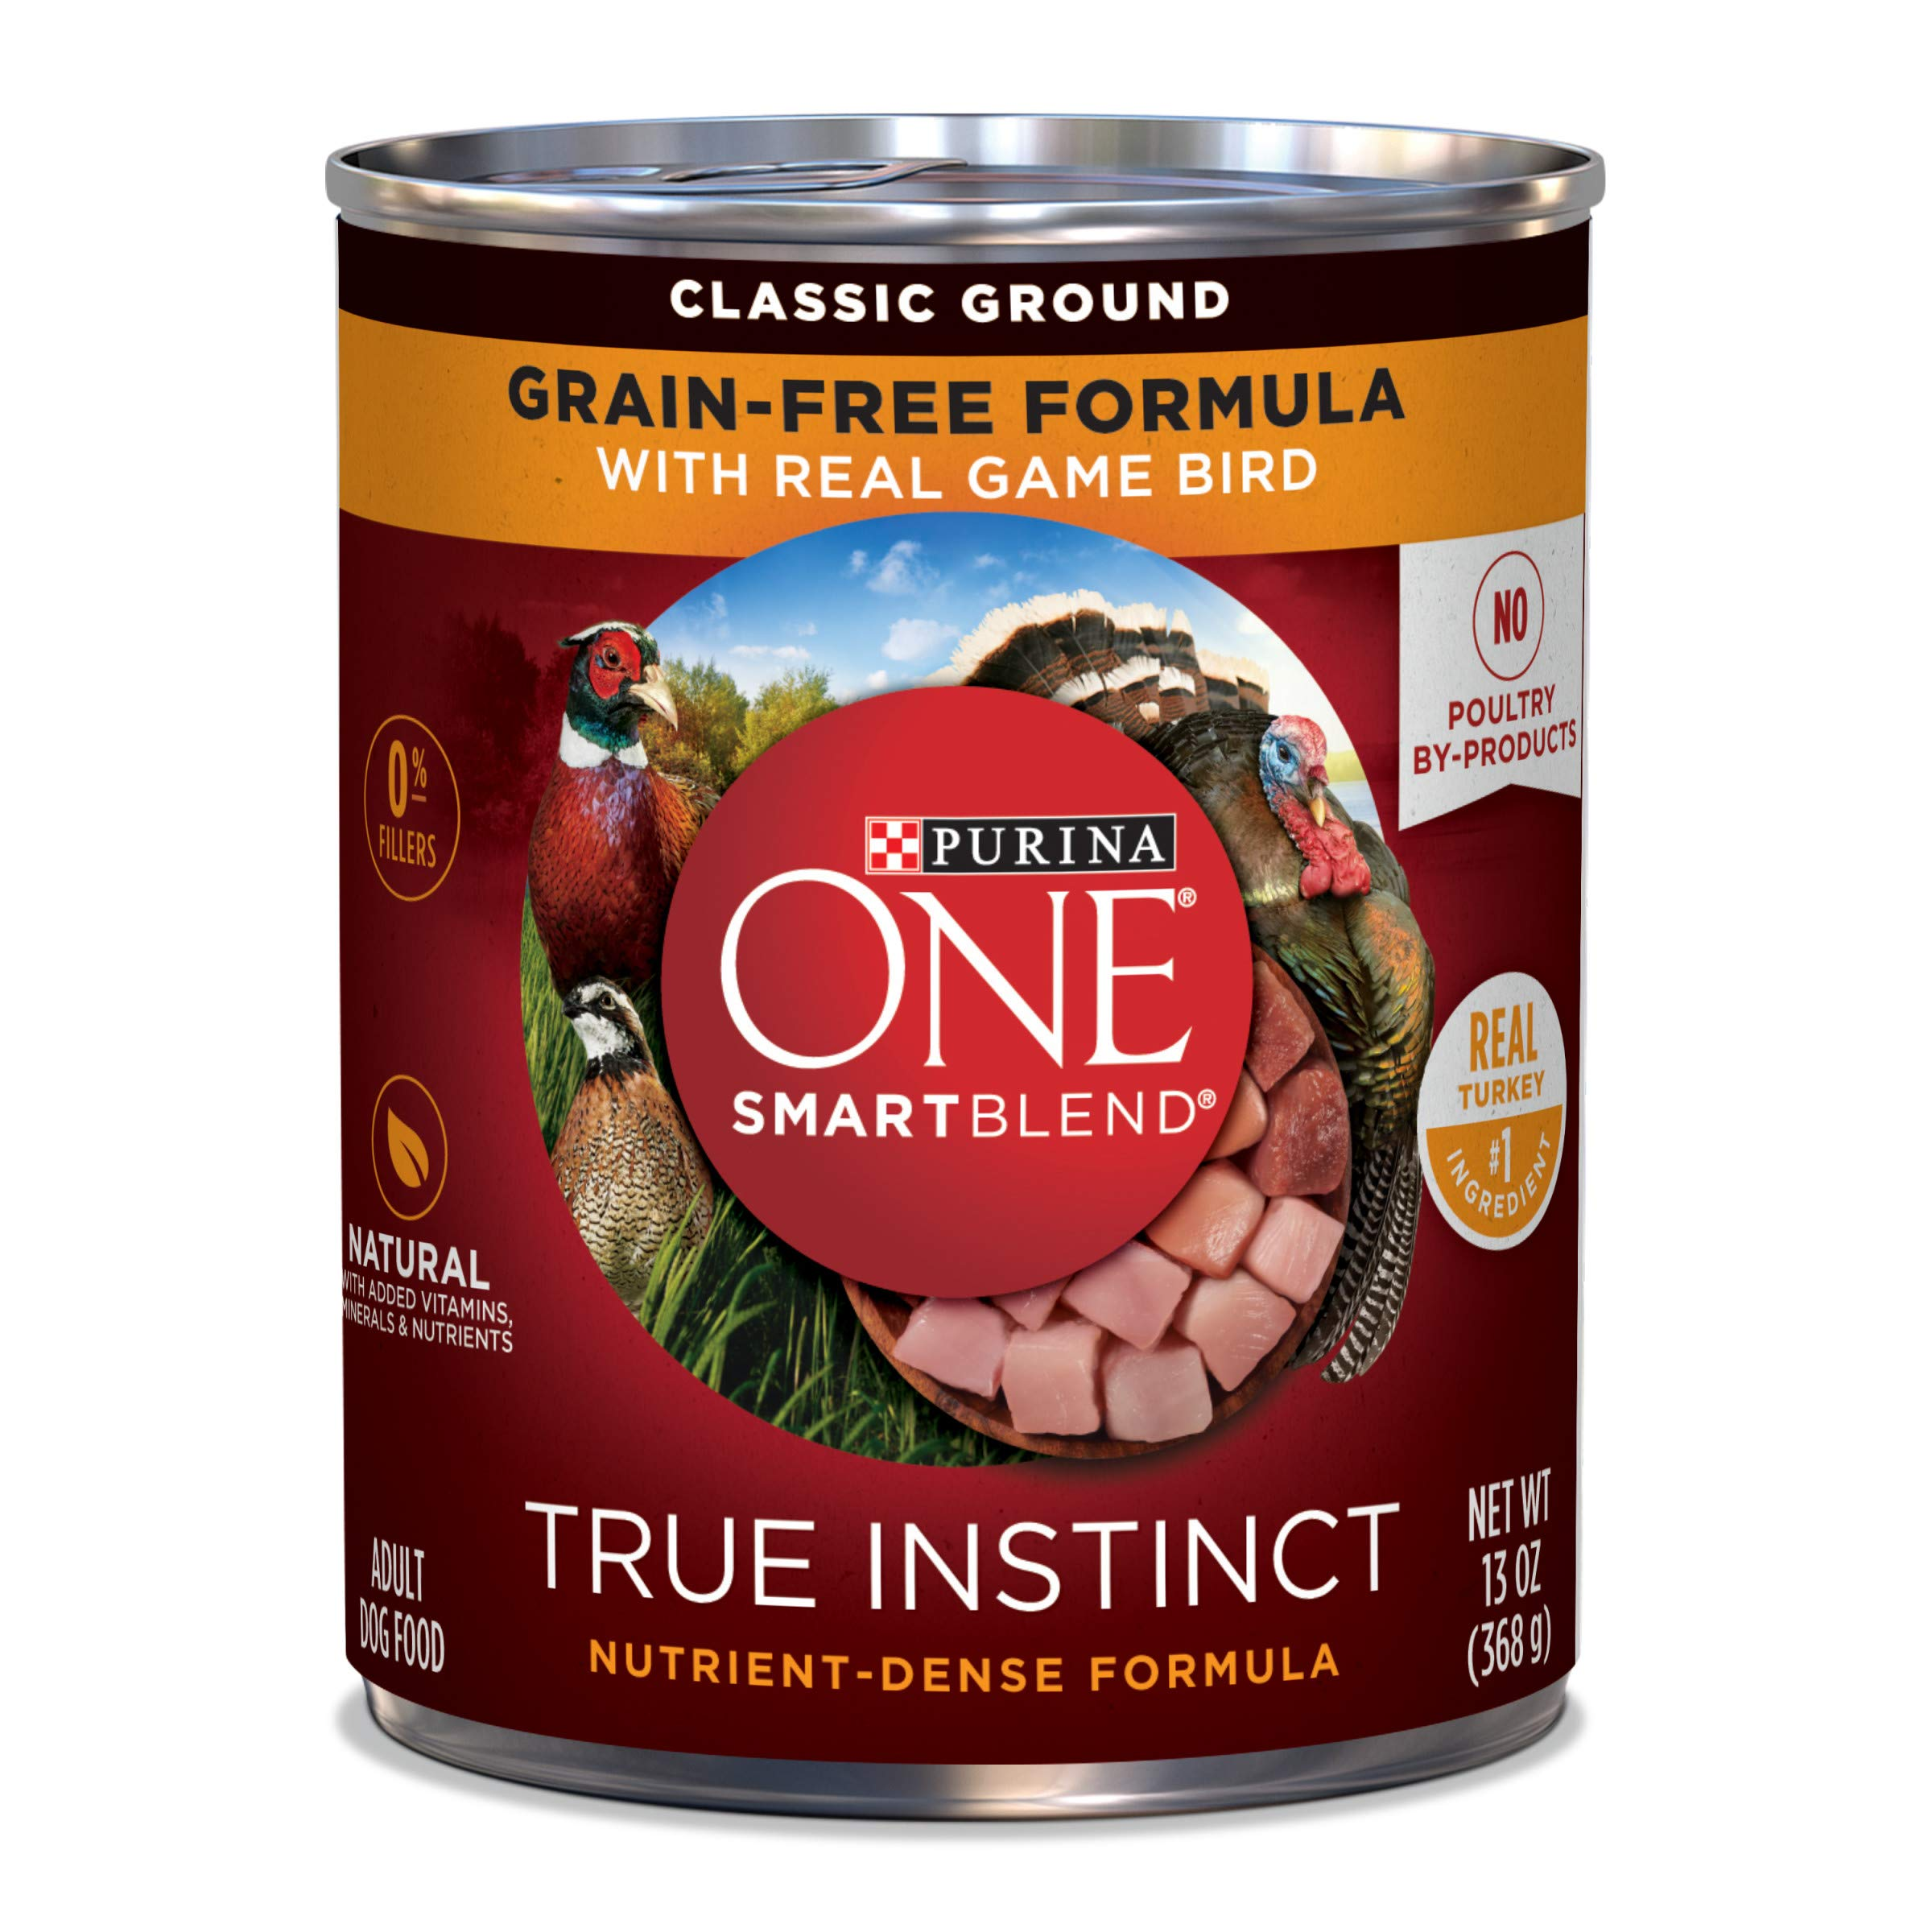 Purina ONE Grain Free, Natural Pate Wet Dog Food, SmartBlend True Instinct With Real Gamebird - (12) 13 oz. Cans by Purina ONE